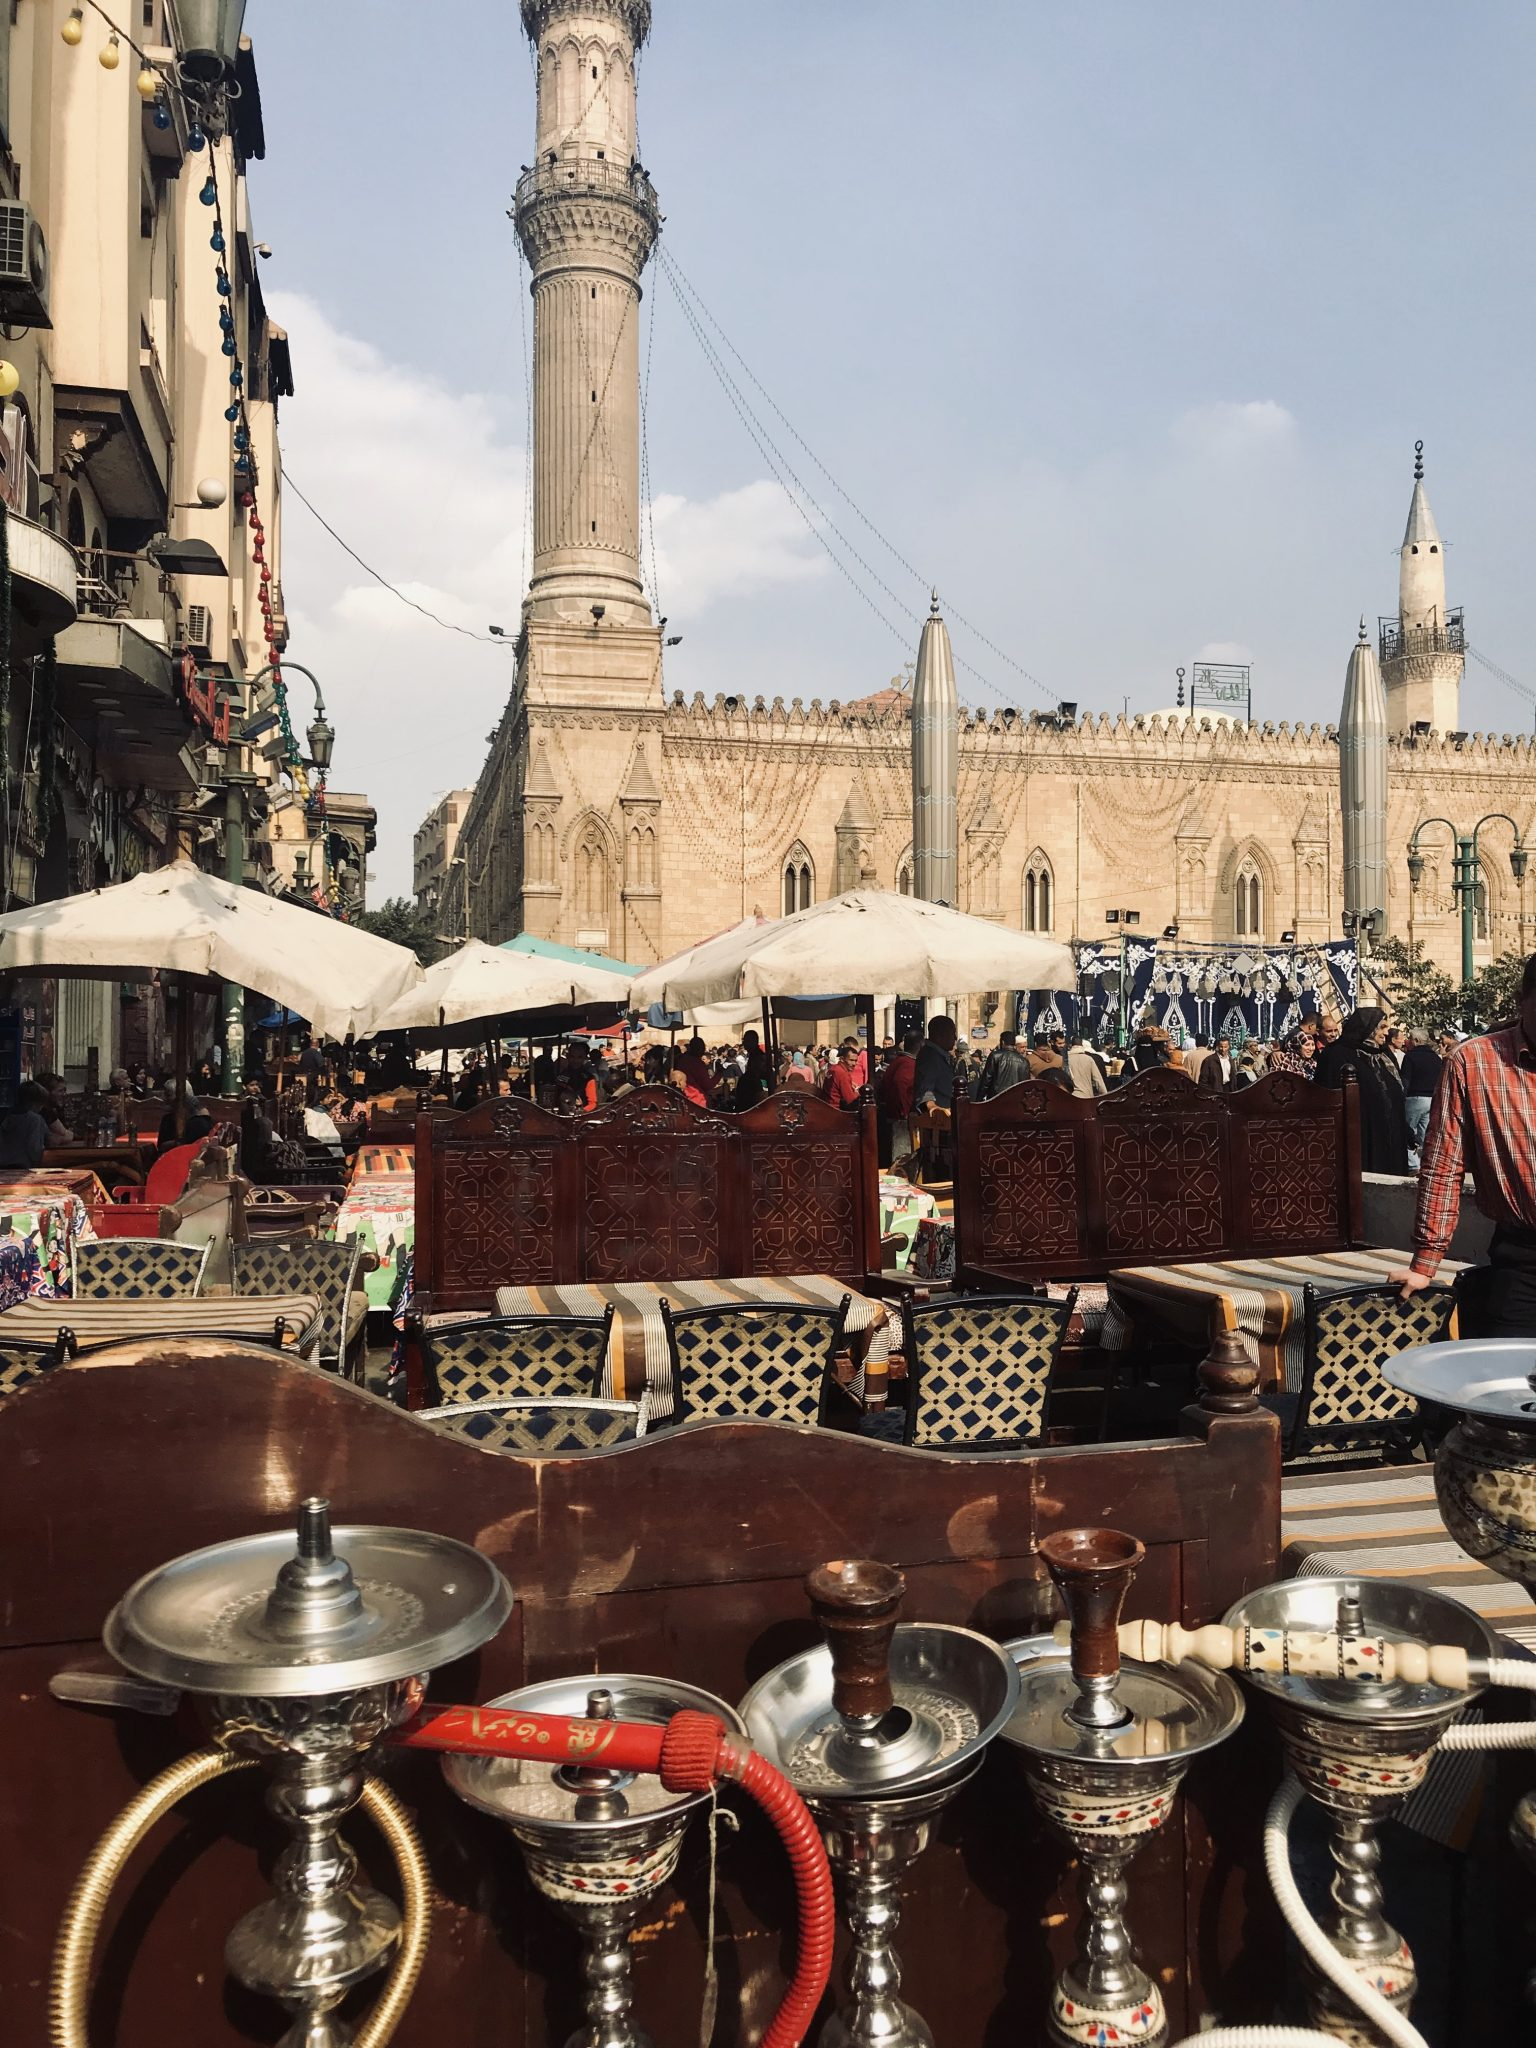 Khan El Khalili markets and mosque in cairo